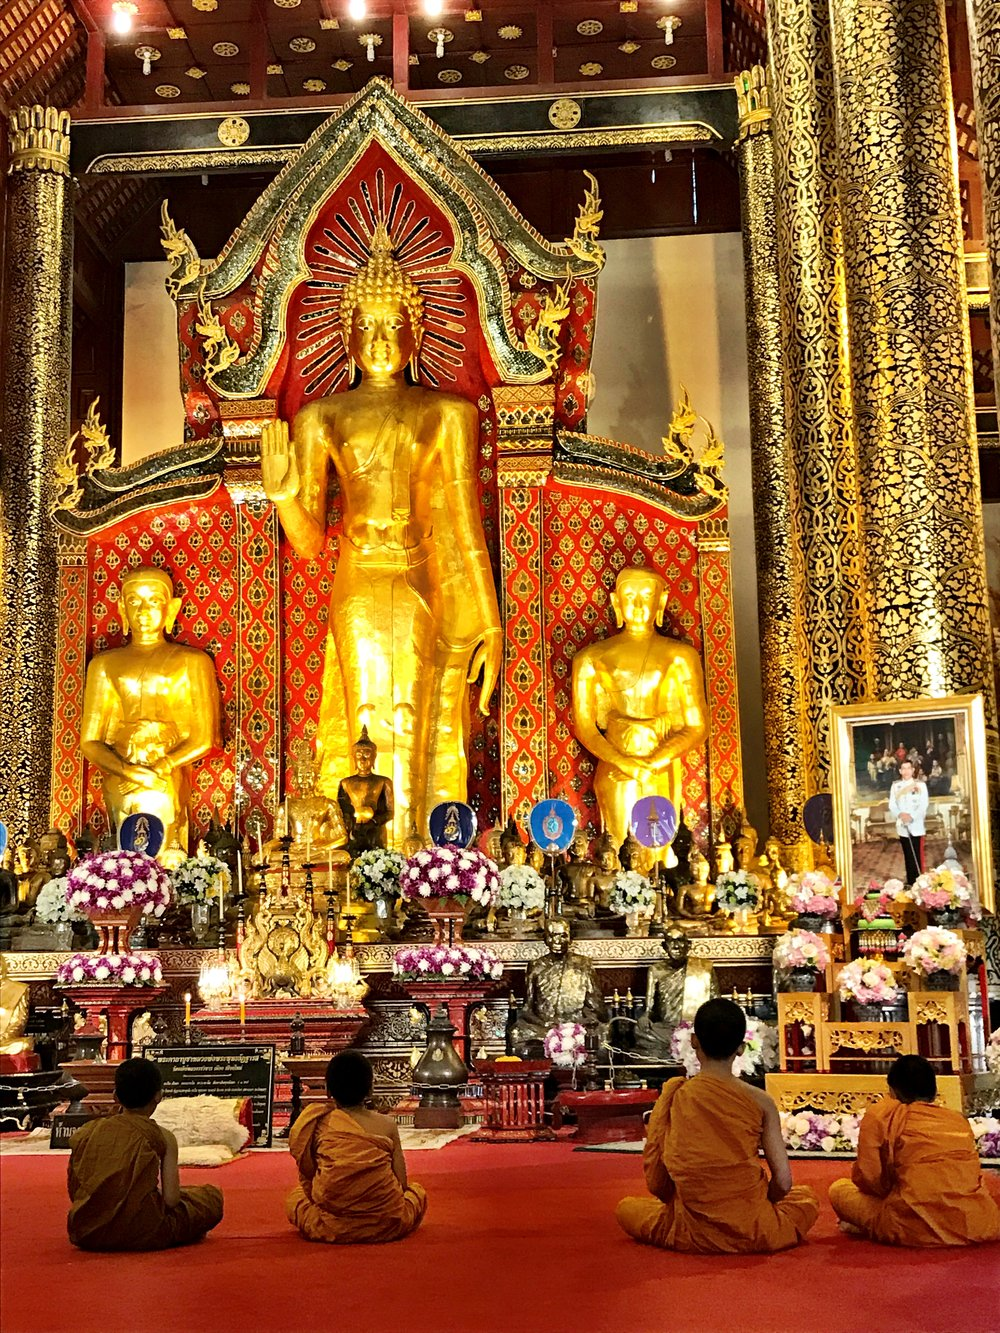 Many travelers stop by Chedi Luang to chat with young monks to learn about their way of life